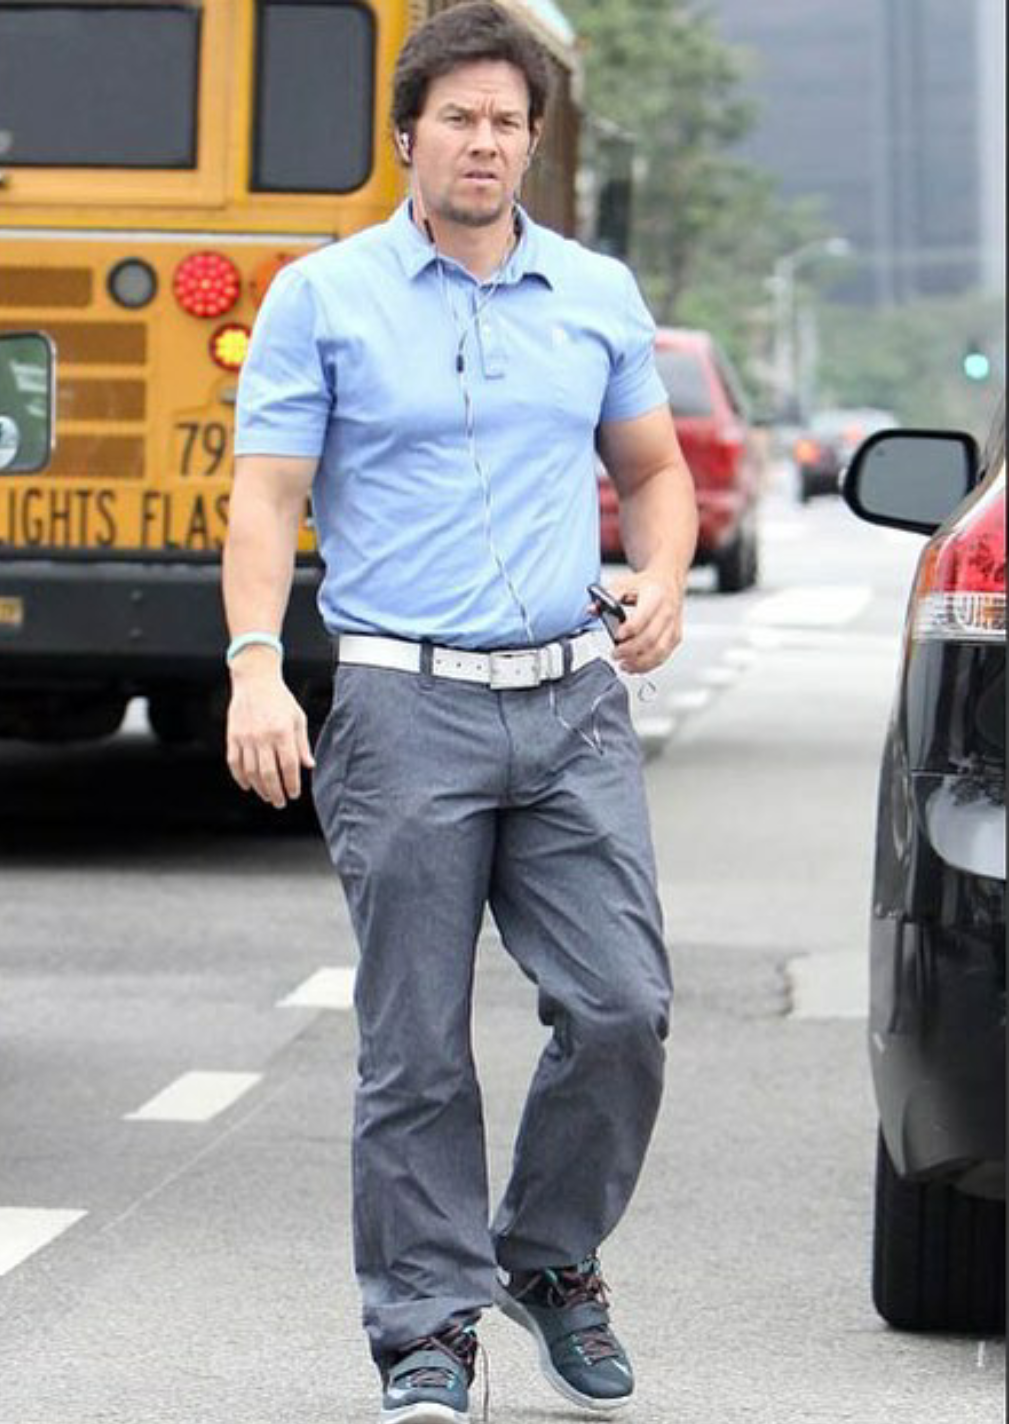 erection in public checkout the bulge in mark wahlberg